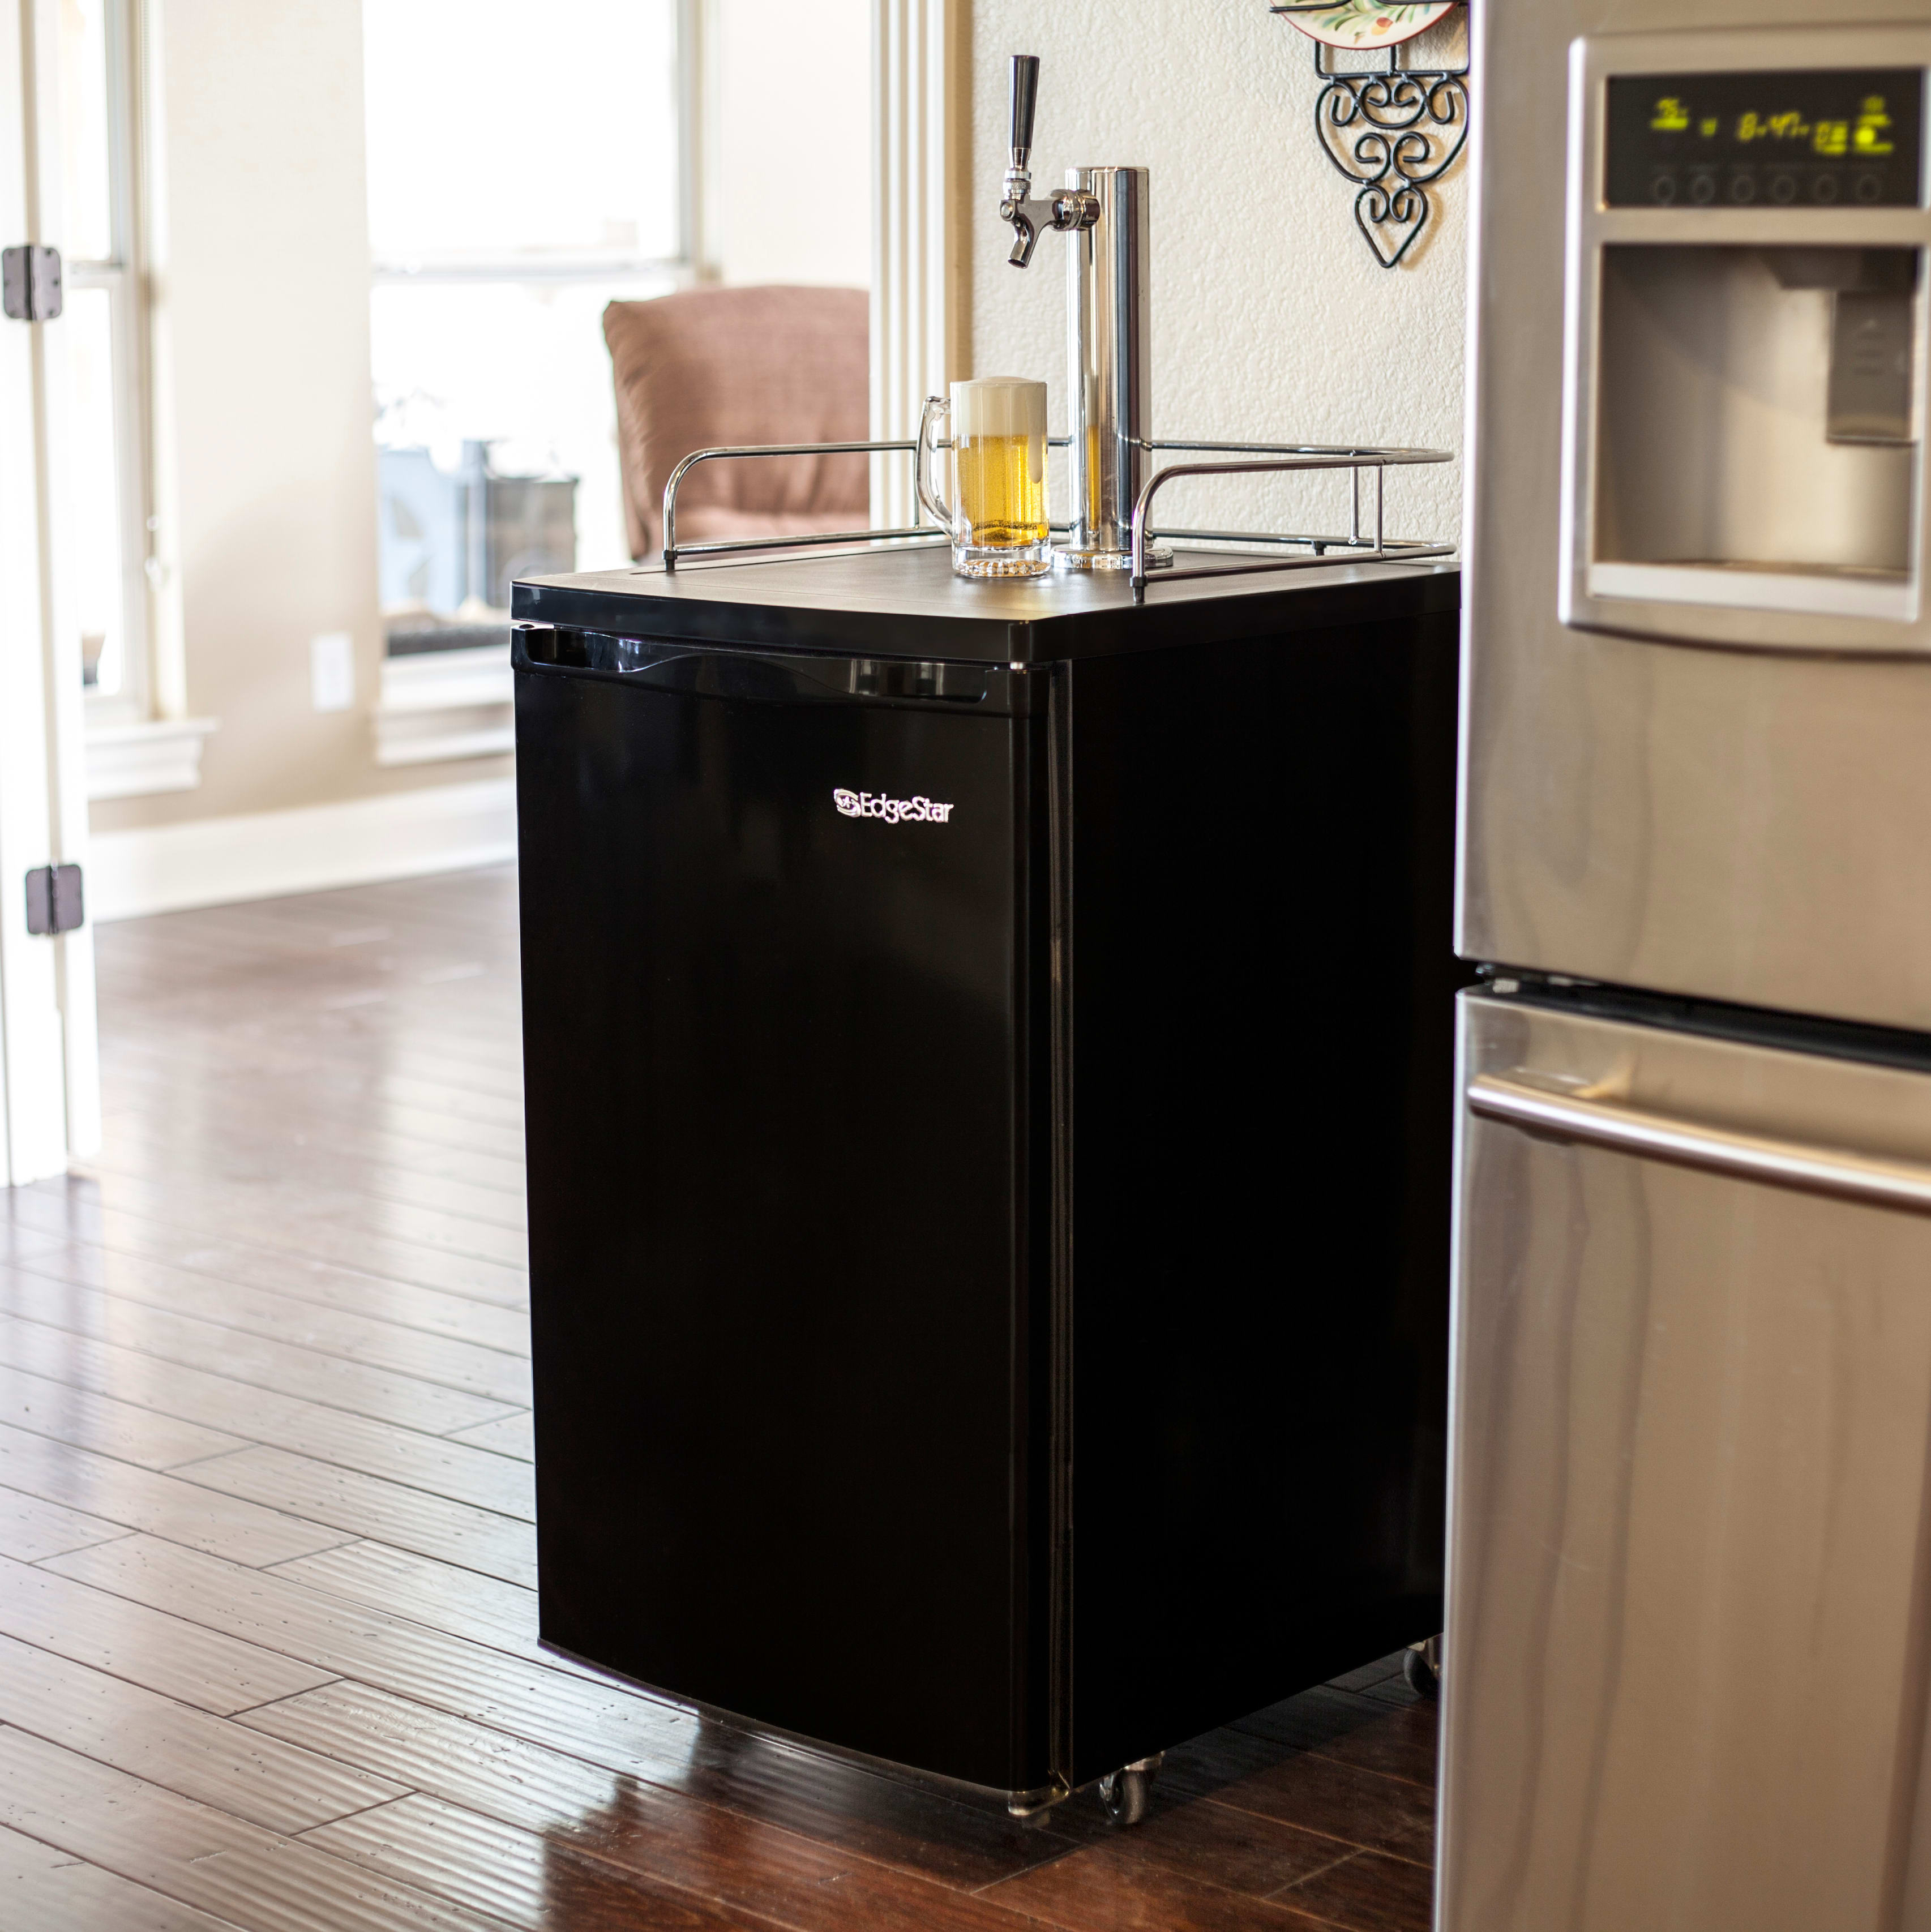 Commercial refrigerator for home use - Kegerators